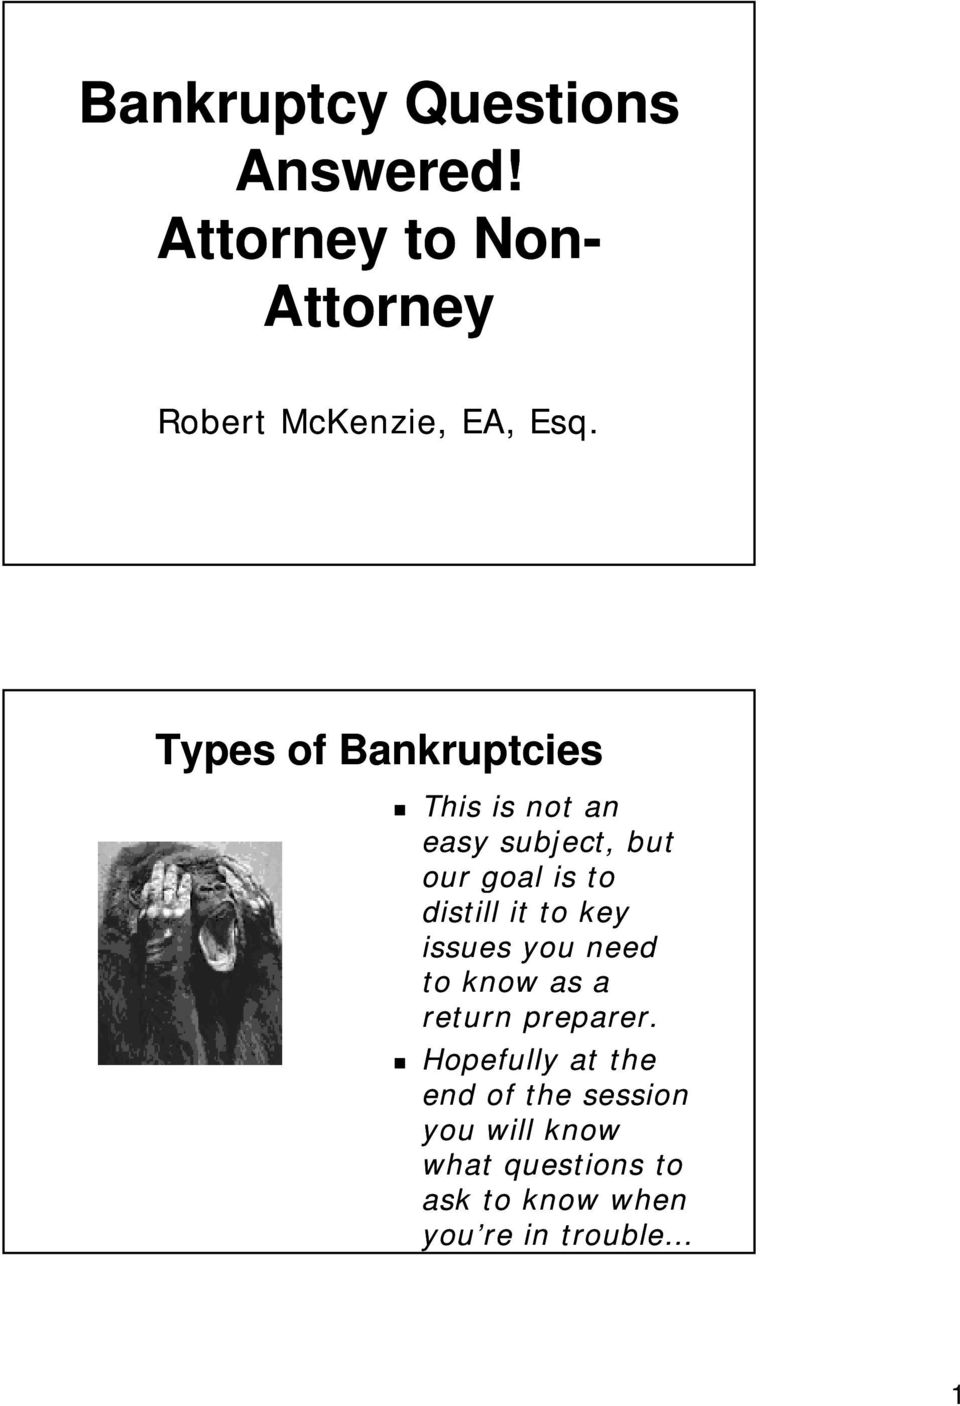 Types of Bankruptcies This is not an easy subject, but our goal is to distill it